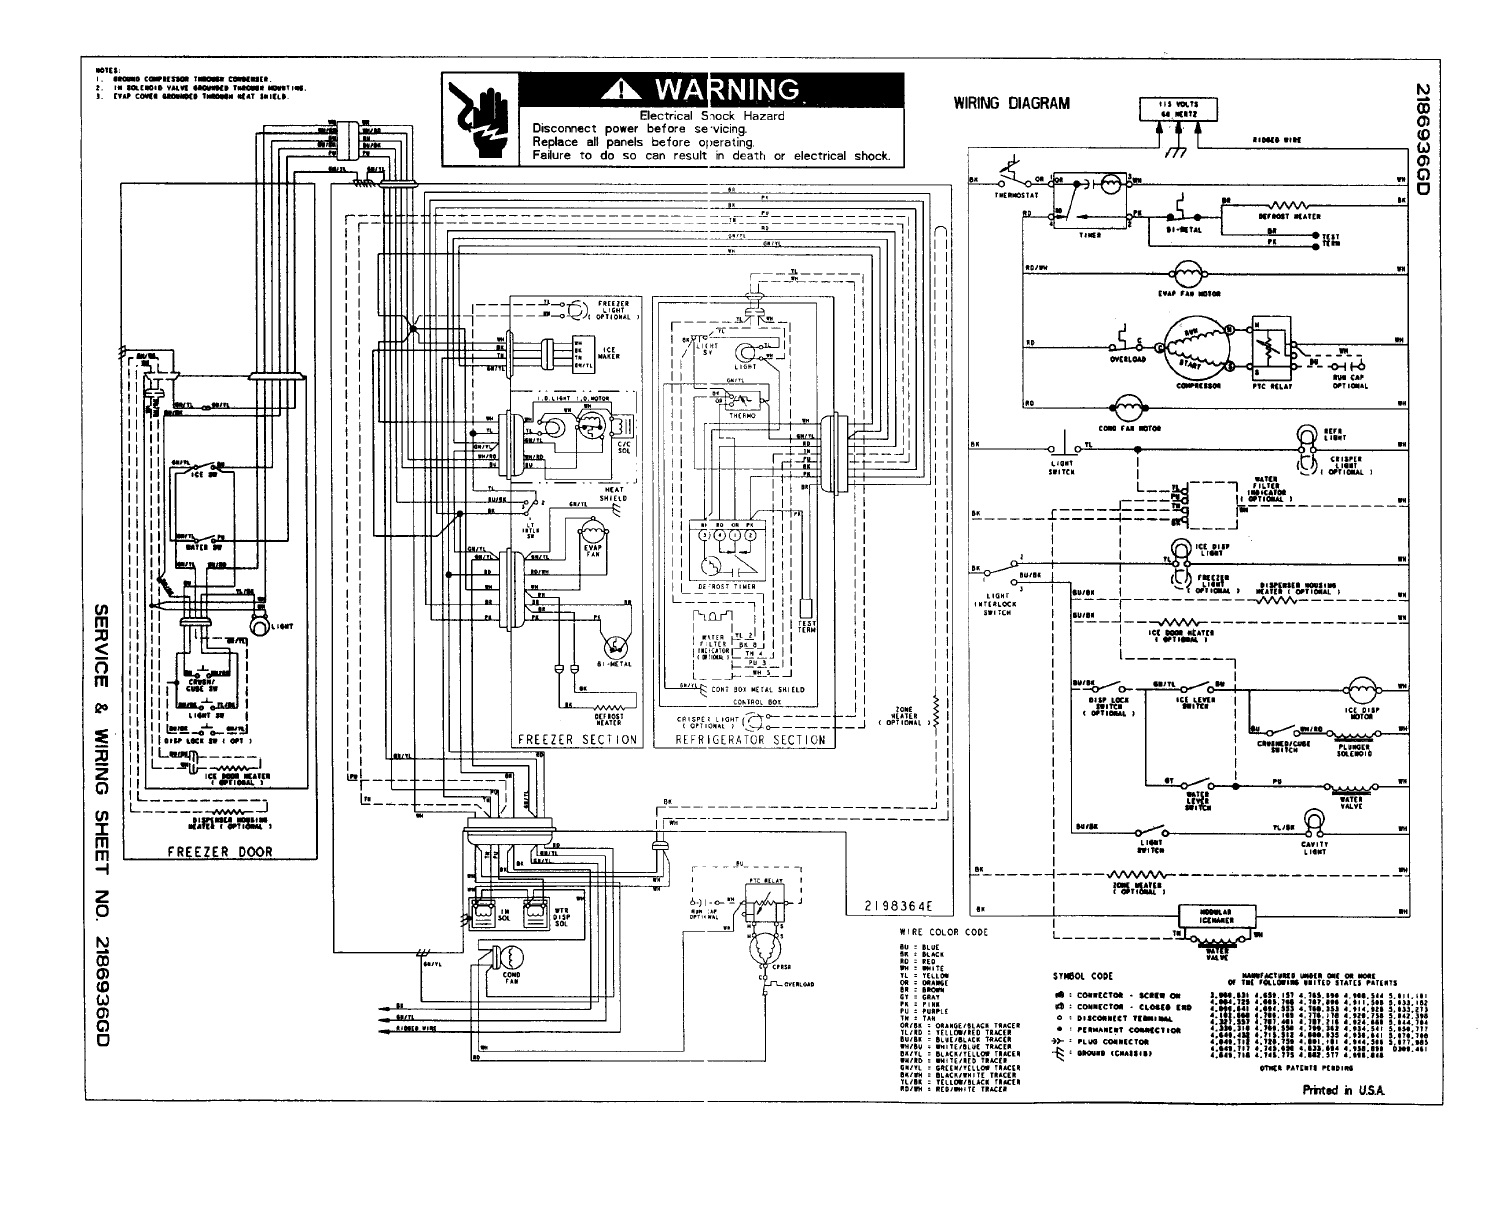 honeywell mercury thermostat wiring diagram collection